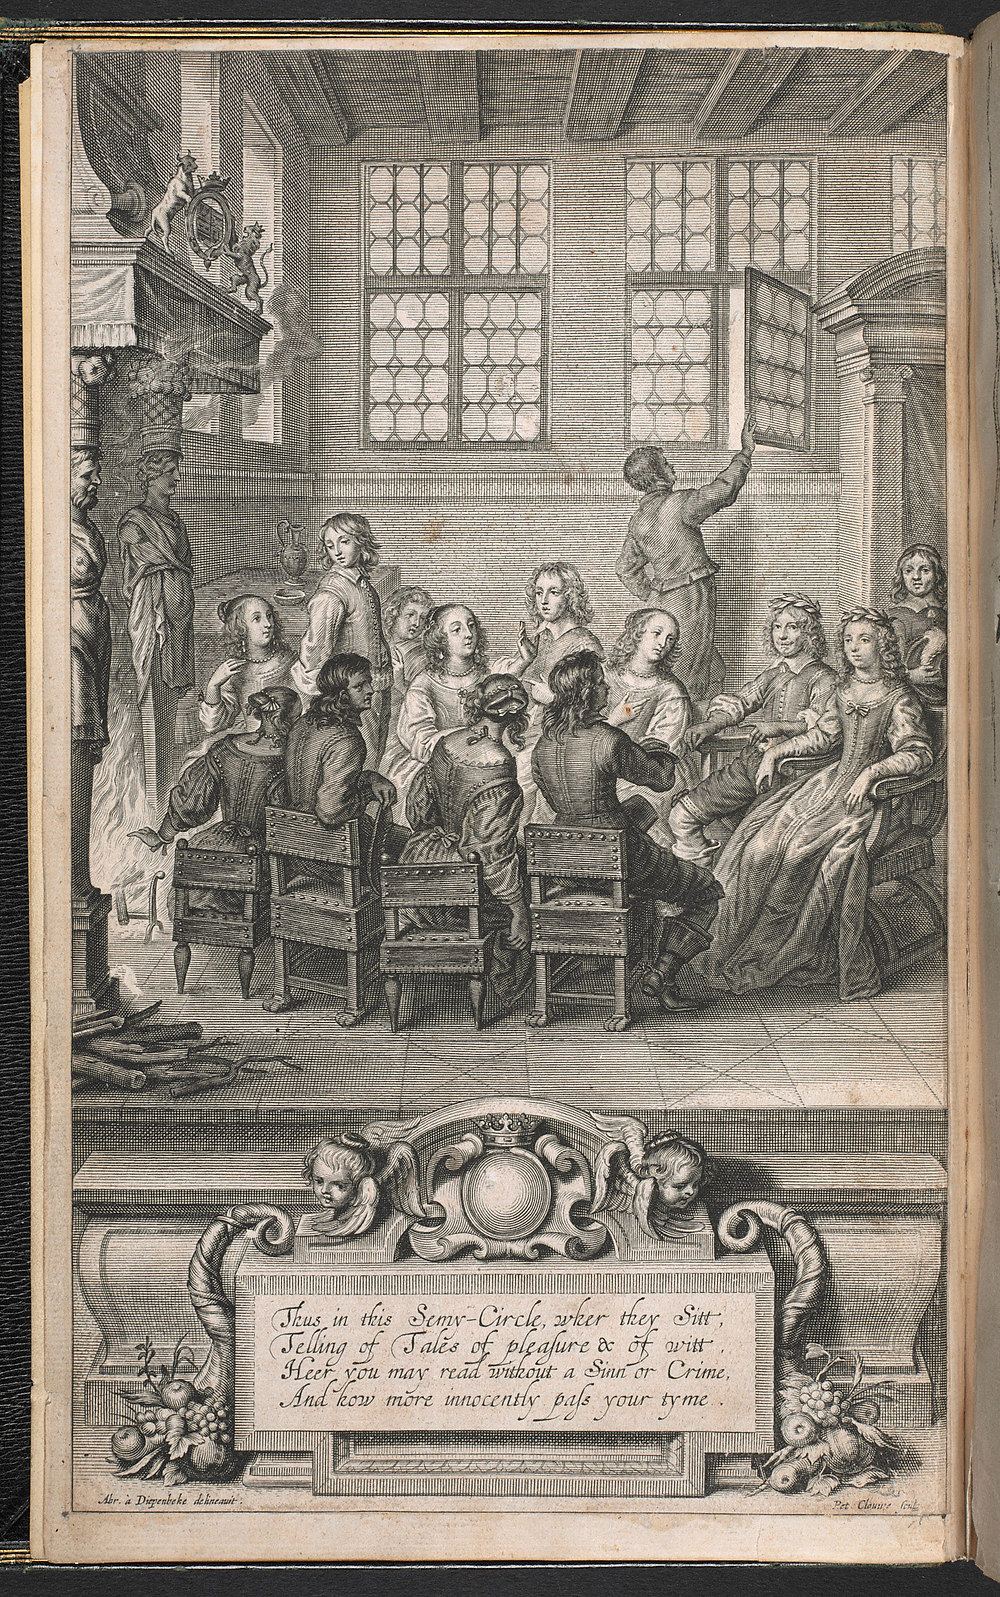 The World's Olio frontispiece (1655) – Cavendish in her closet. Held in the British Library